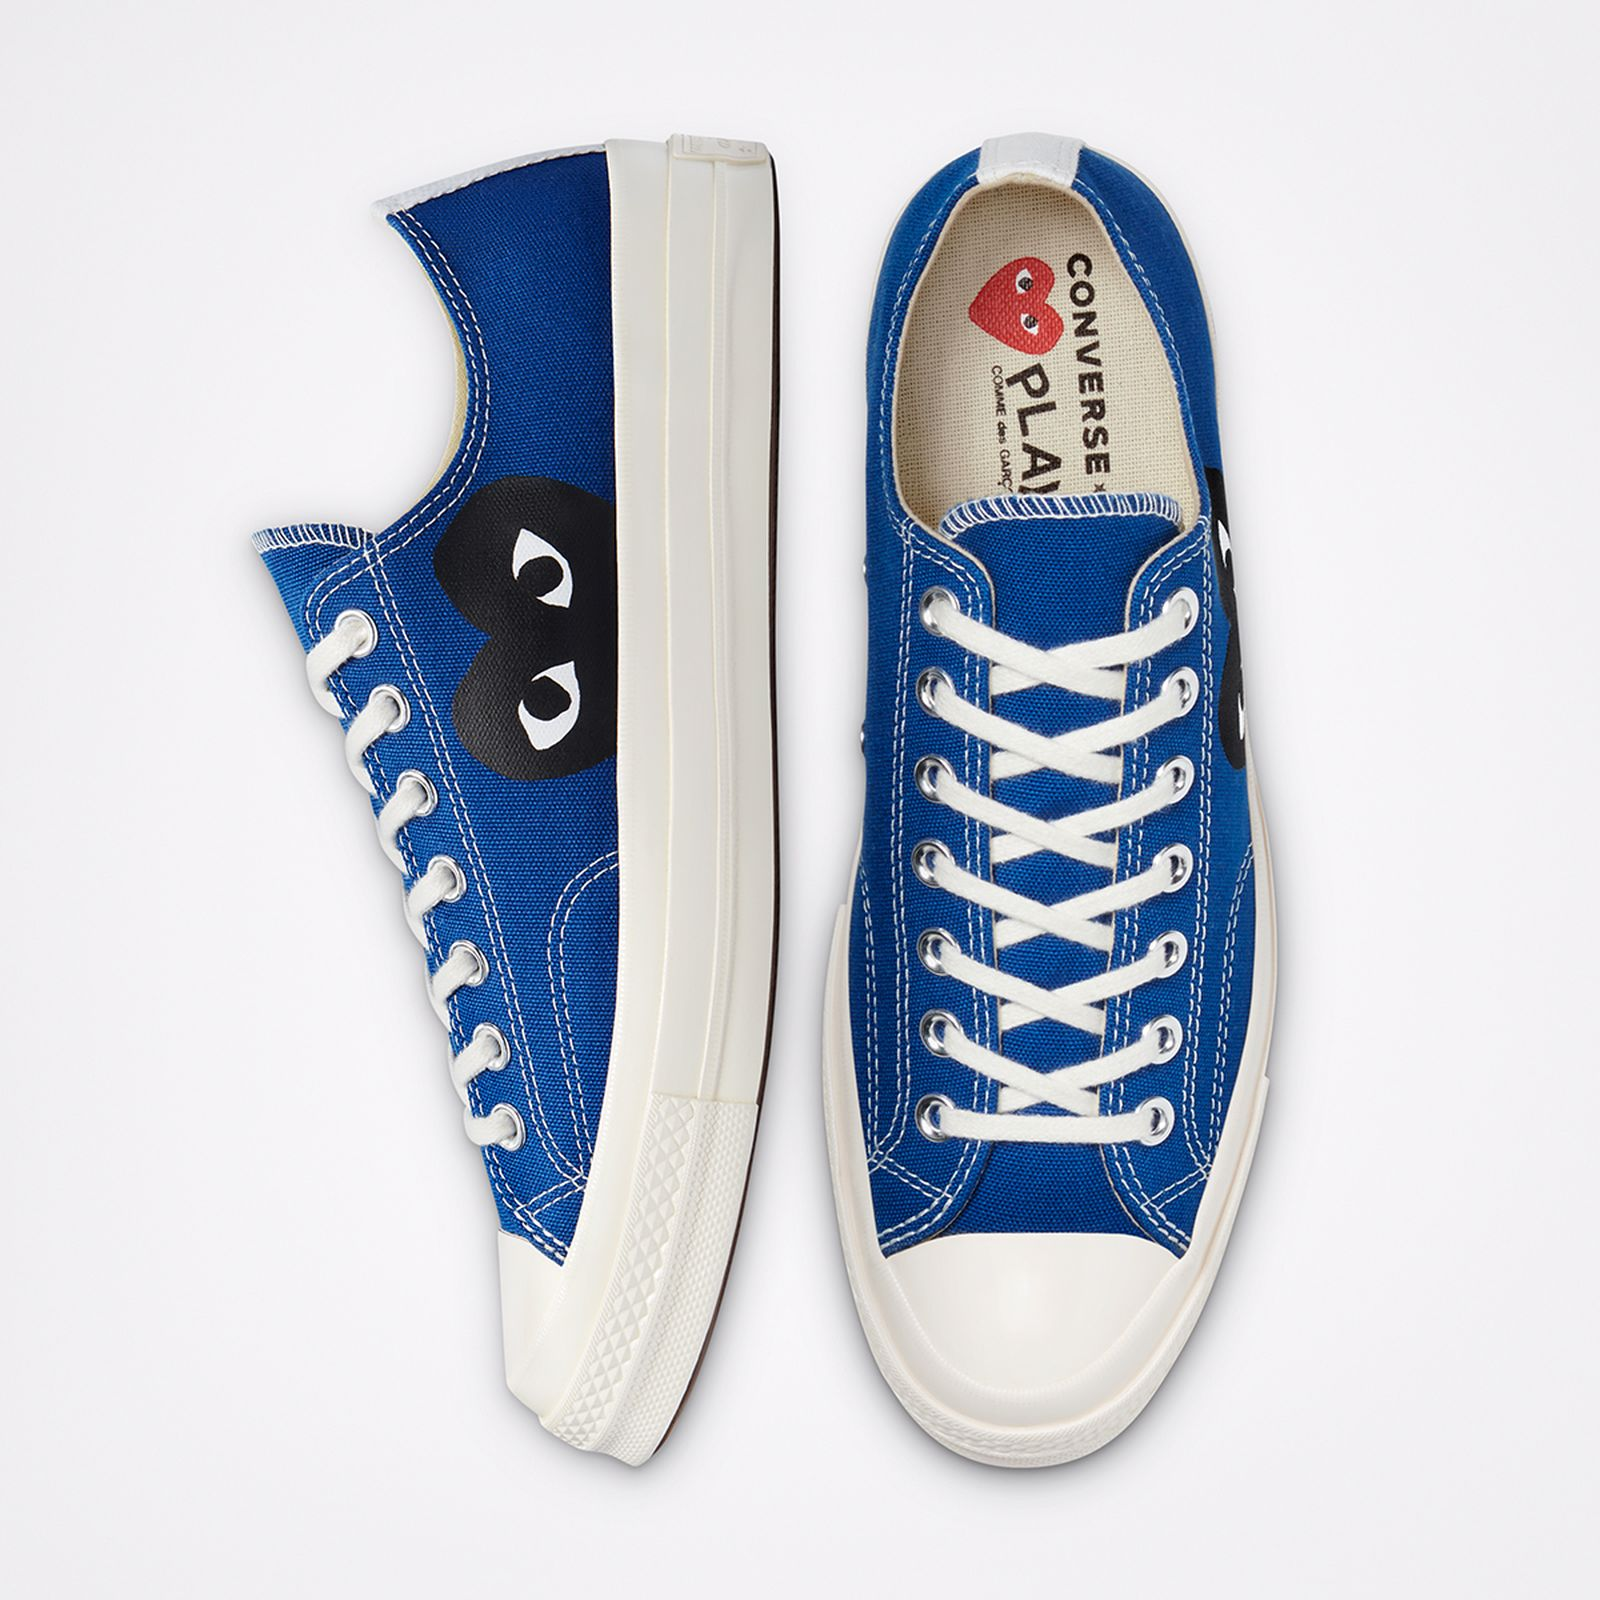 comme-des-garcons-play-converse-chuck-70-blue-gray-release-date-price-1-07